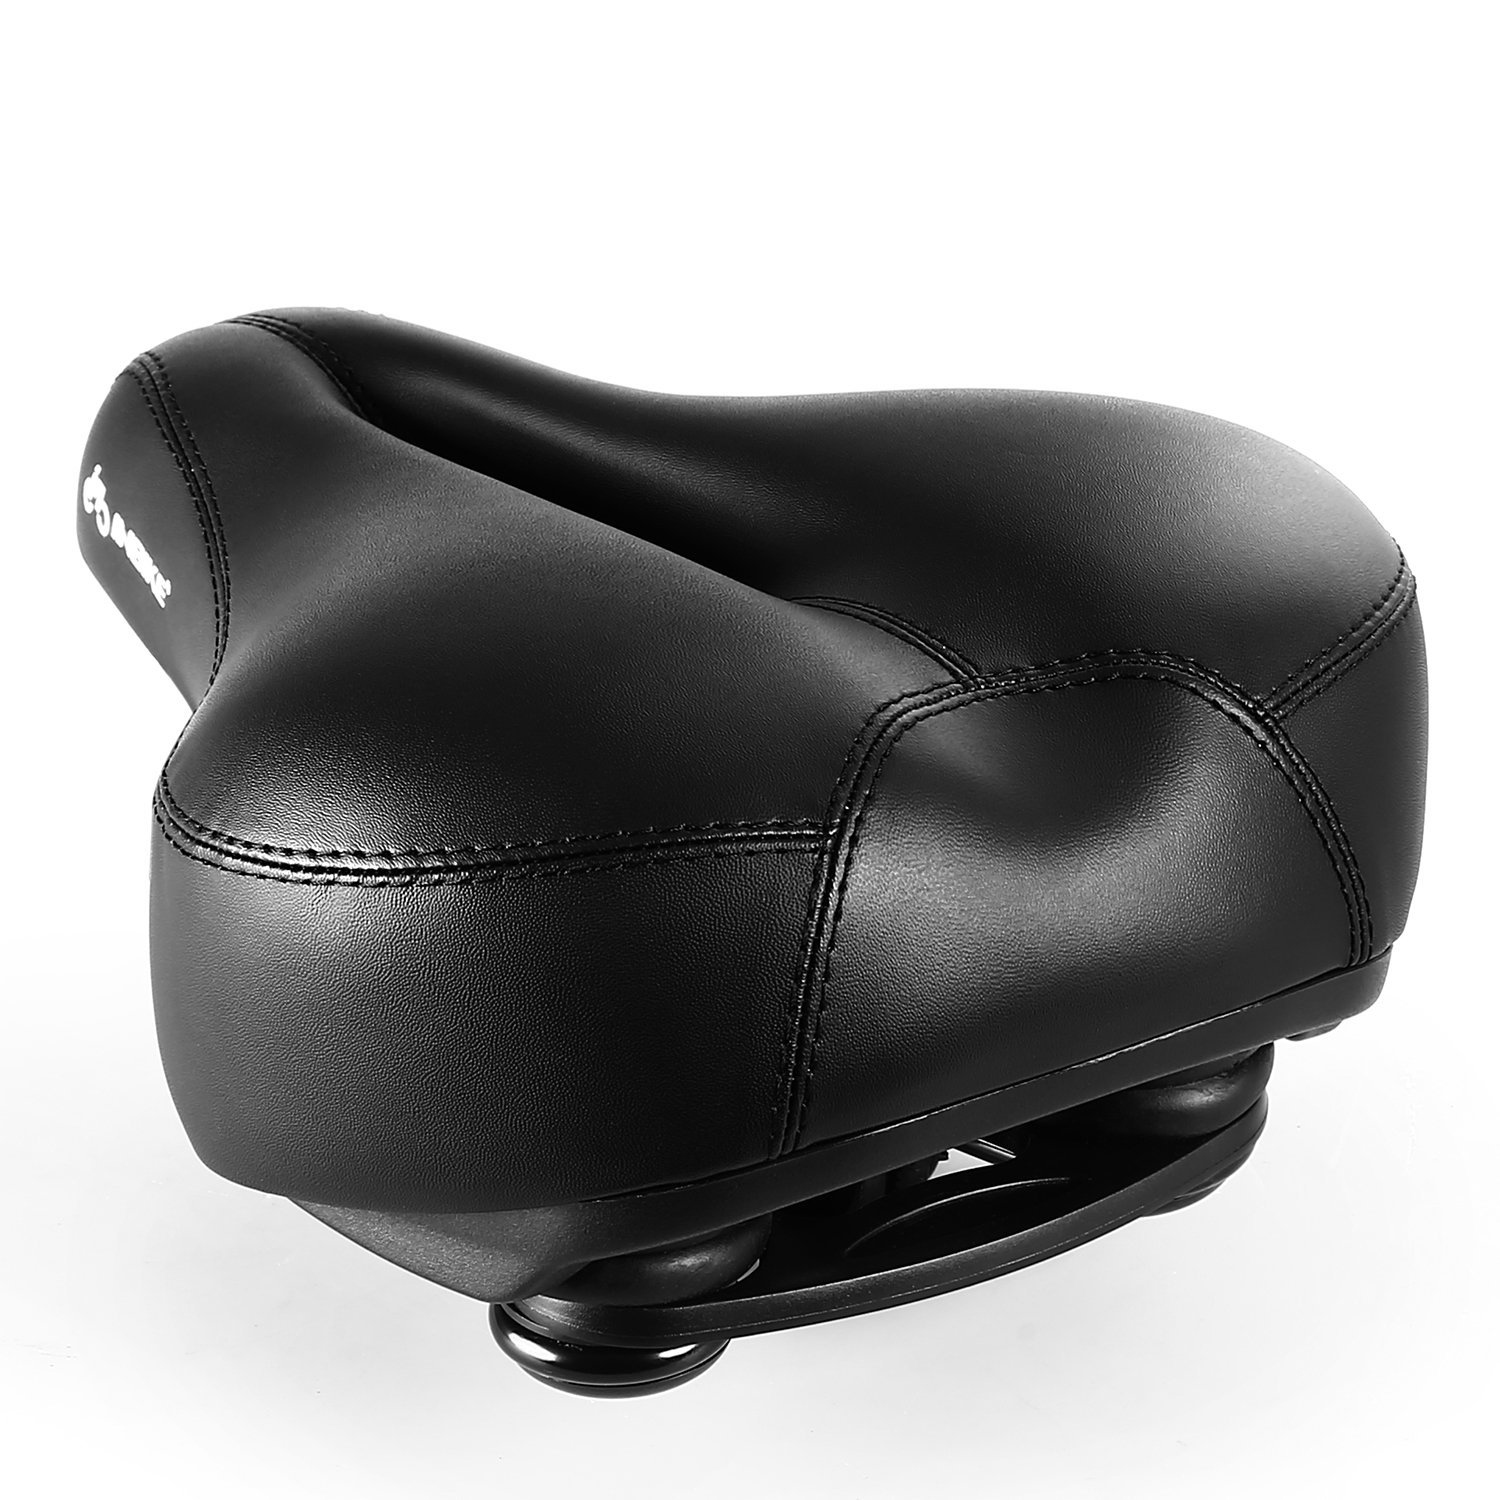 Bike Chair 10 Best Road Bike Saddles Reviews And Buying Guide